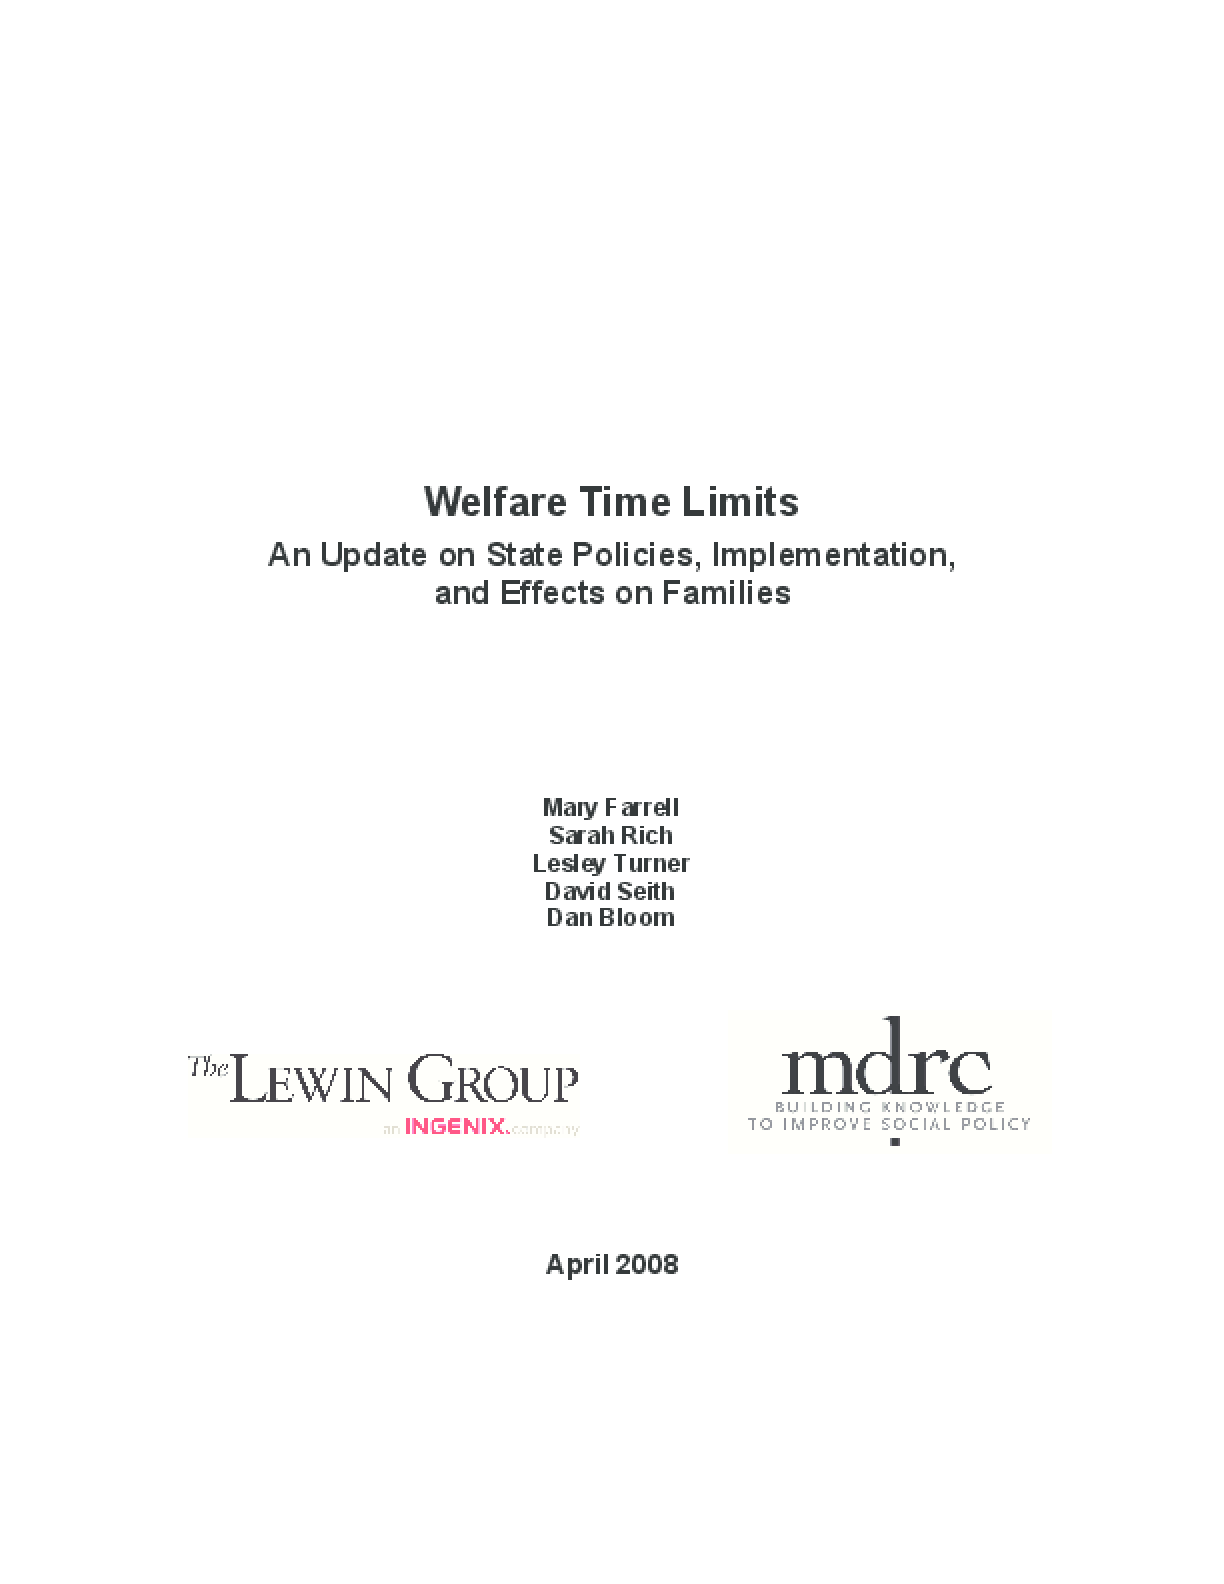 Welfare Time Limits: An Update on State Policies, Implementation, and Effects on Families